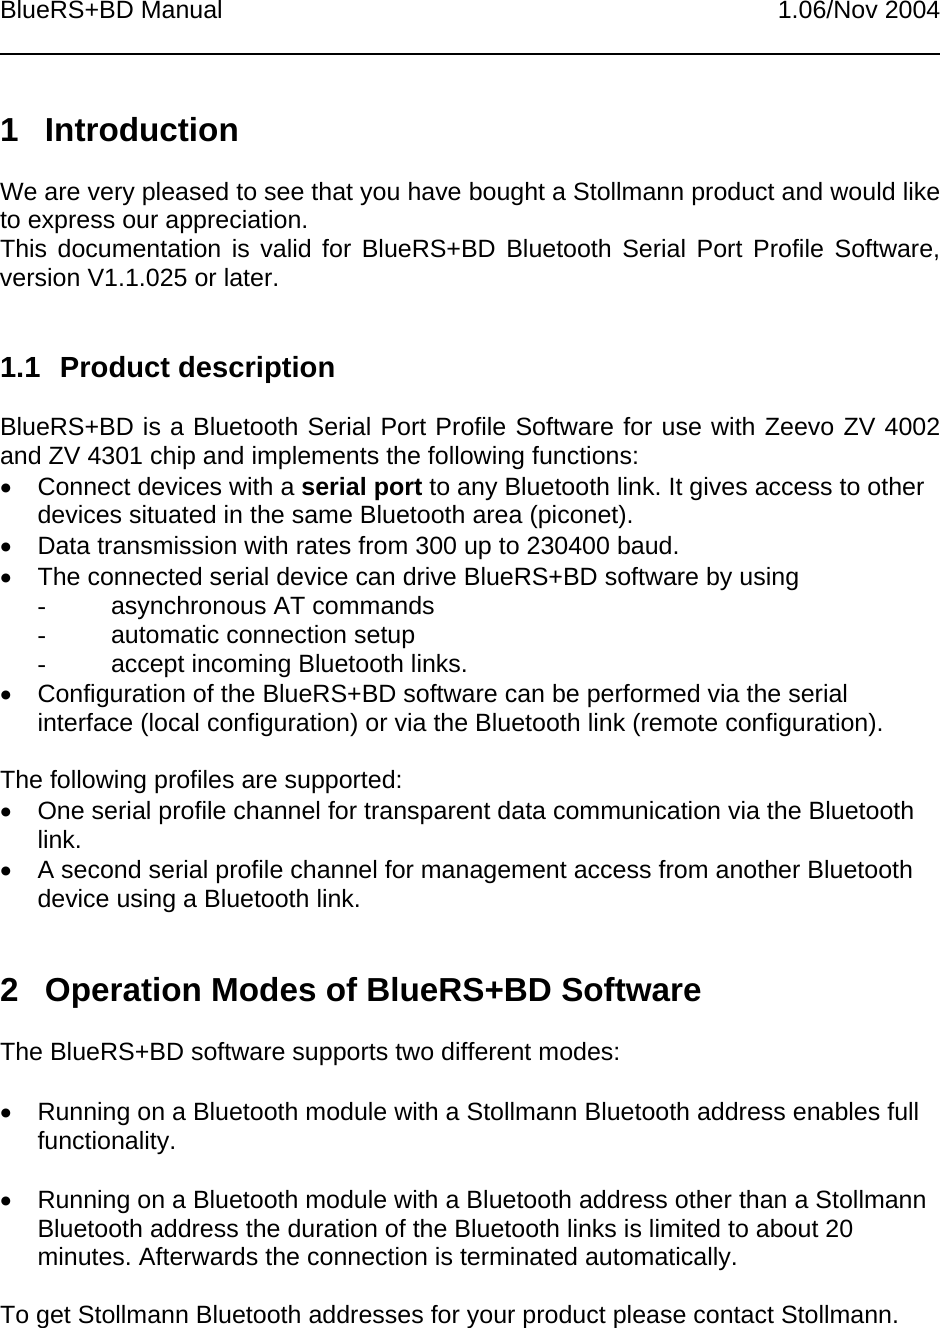 Able Systems BT001 Bluetooth Module User Manual BlueRS BD